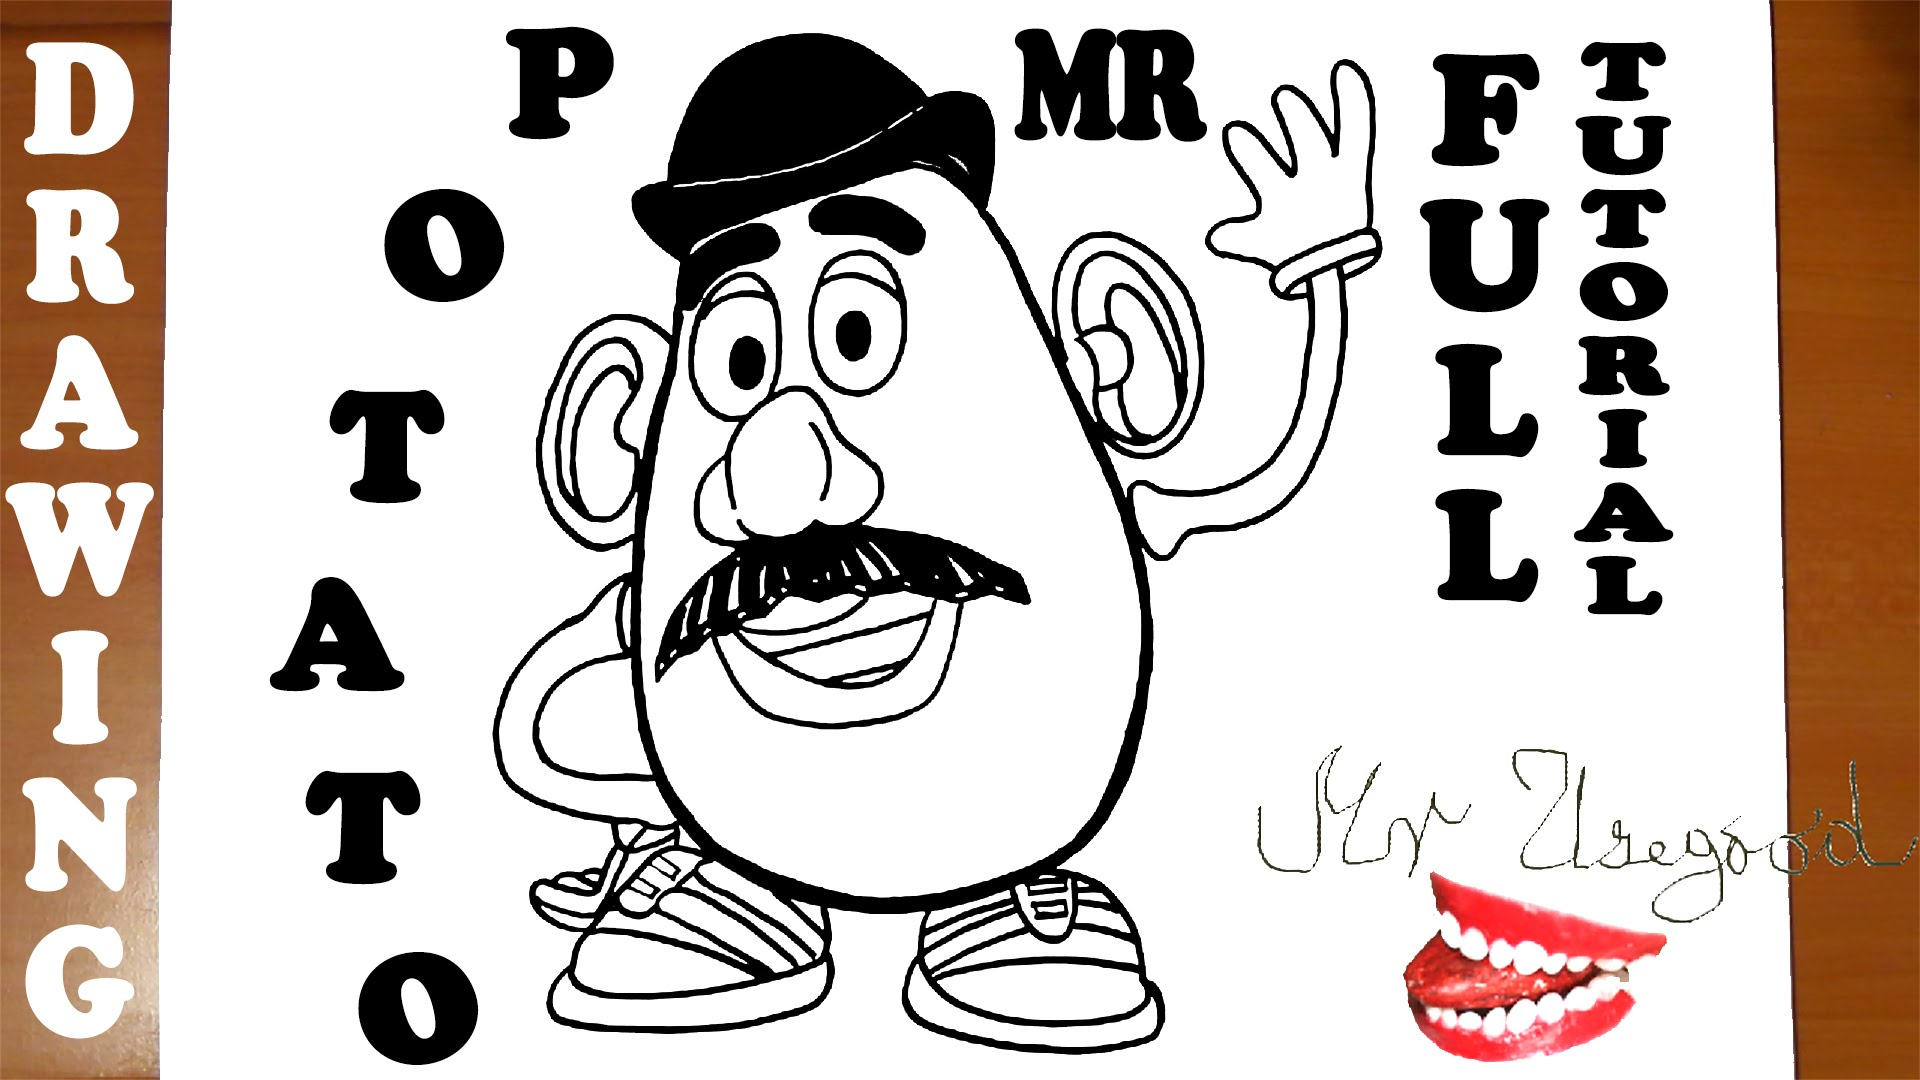 1920x1080 Mr Potato Head Drawing How To Draw Mr Potato Head Toy Story